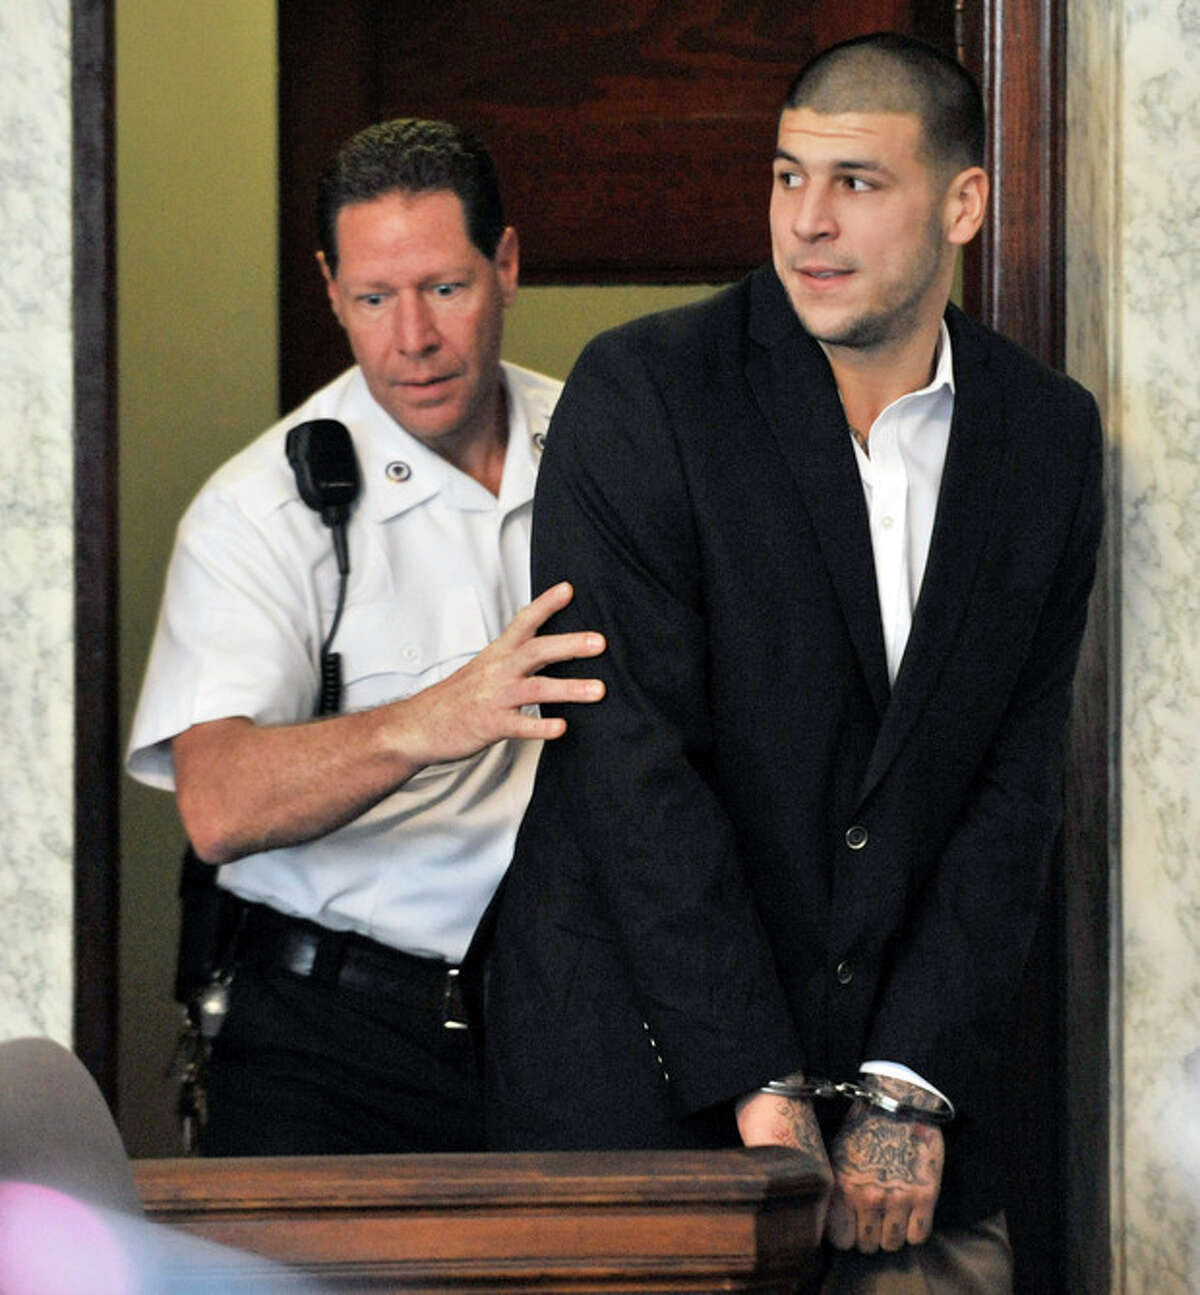 FILE - In this Aug. 22, 2013, file photo, former New England Patriots NFL football player Aaron Hernandez, is lead into court in Attleboro, Mass. Hernandez, who has been indicted on a murder charge in the killing of Odin Lloyd, is scheduled to face arraignment in Superior Court Friday, Sept. 6, 2013 in Fall River, Mass. (AP Photo/Josh Reynolds, File)